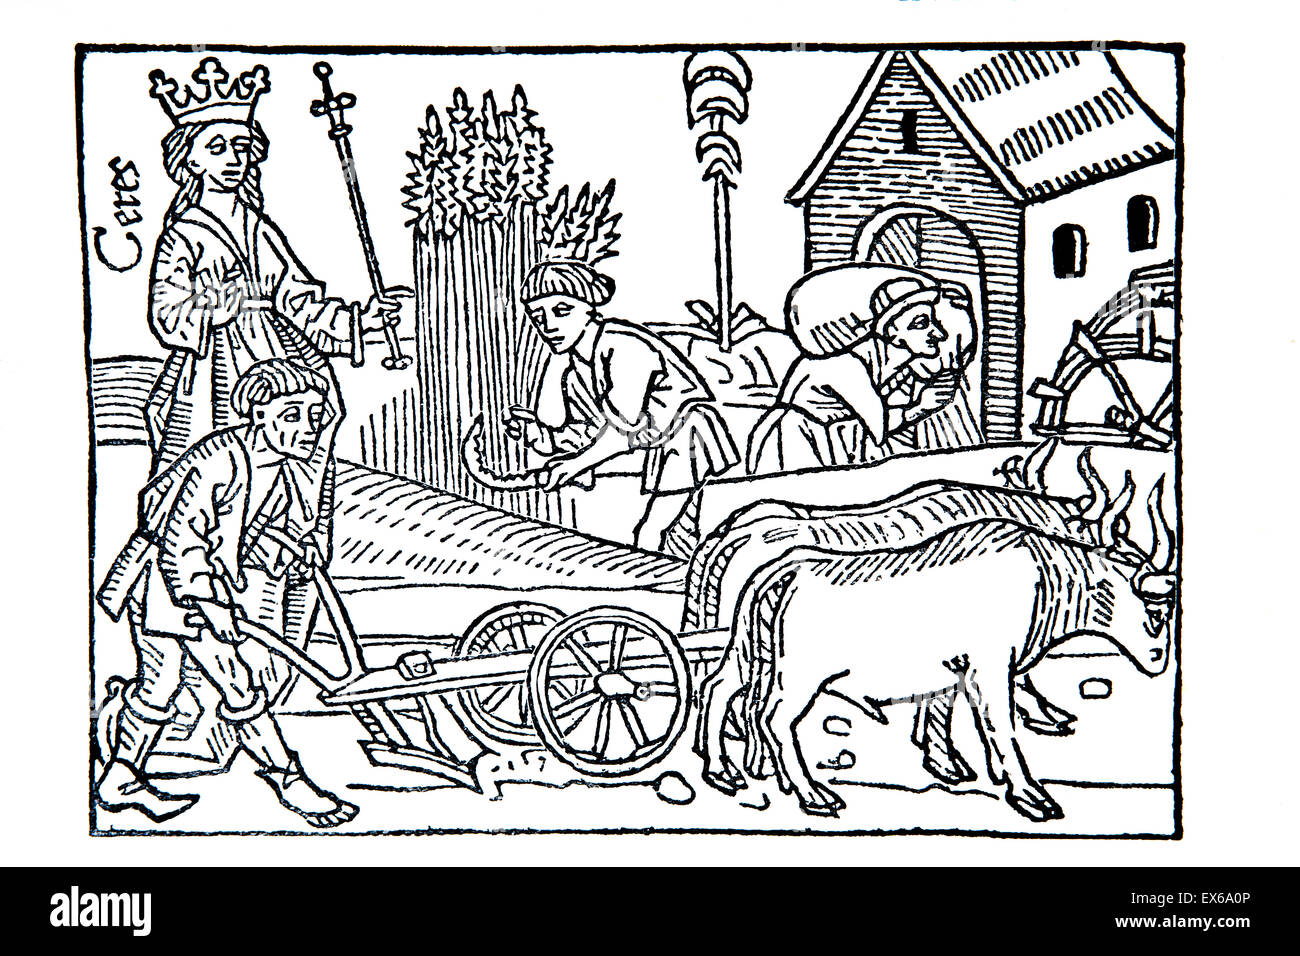 medieval harvest scene, woodcut from Boccaccio's de claris mulieribus (on famous women), published in Ulm 1473 - Stock Image